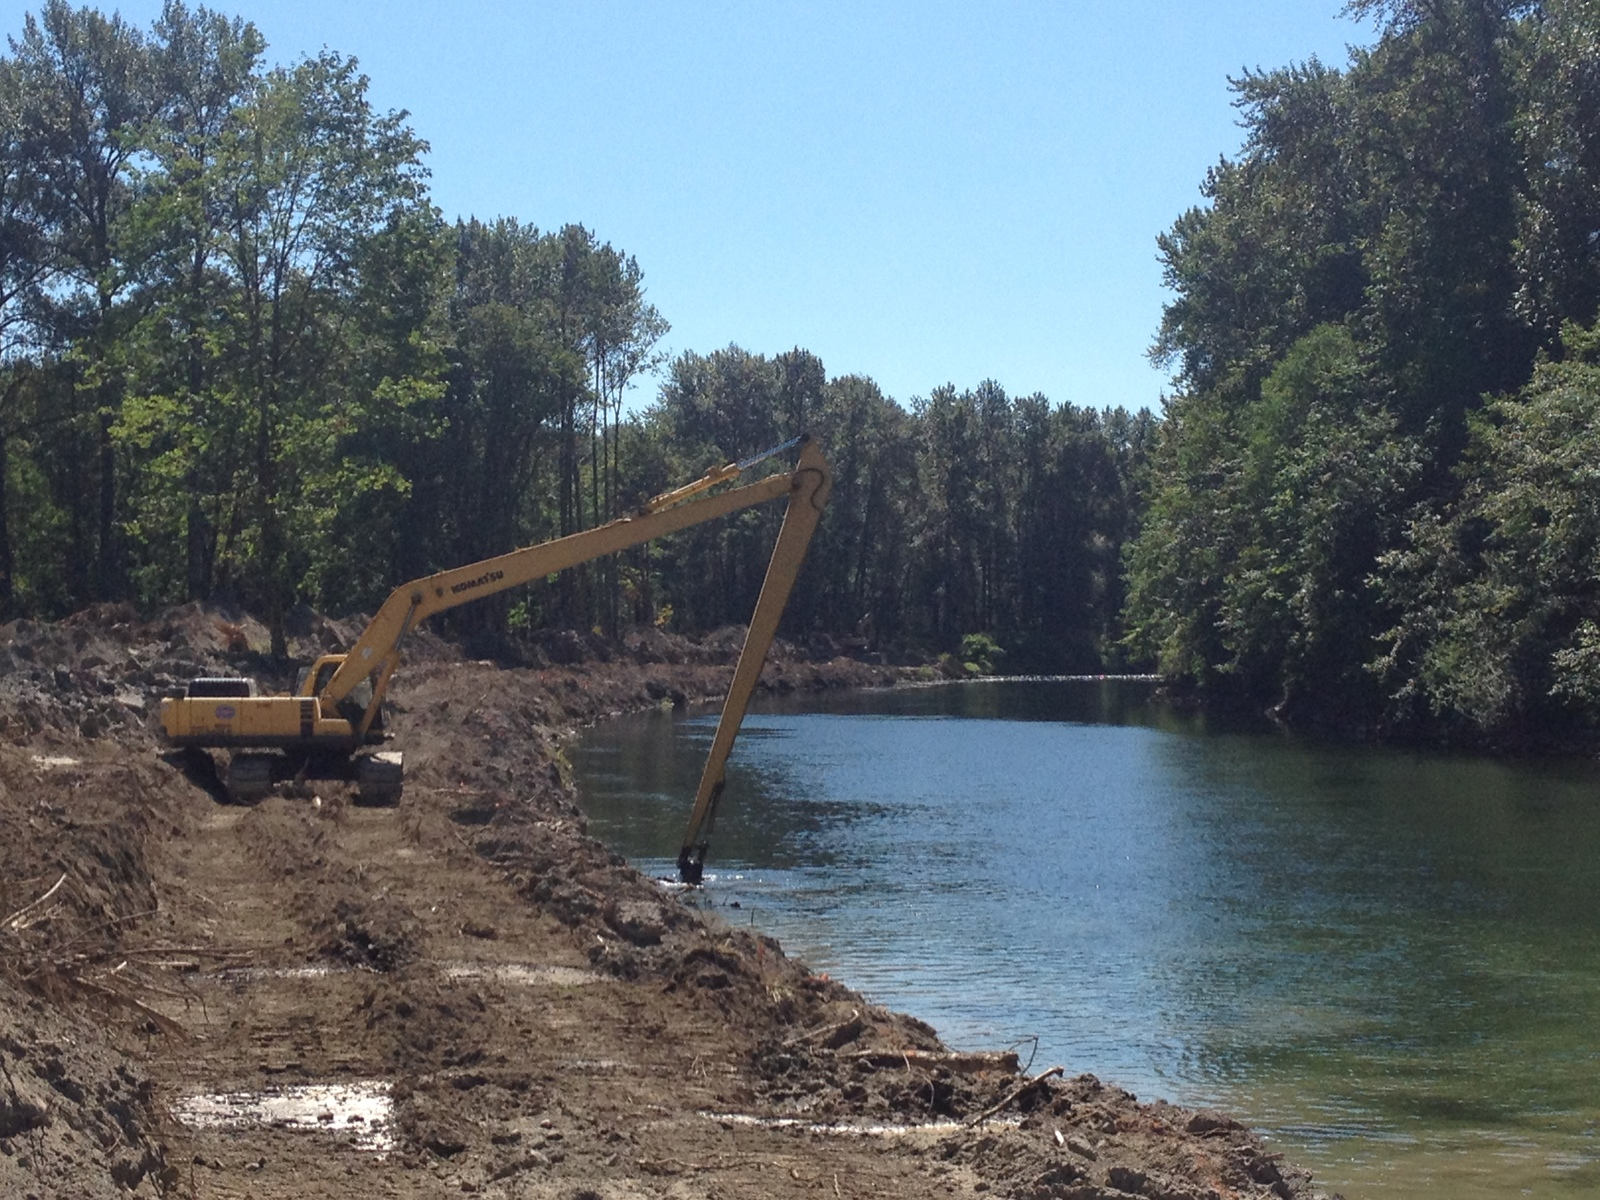 A long-arm excavator was used to remove as much levee toe rock as possible, part of a Floodplains by Design project. Photo by King County.